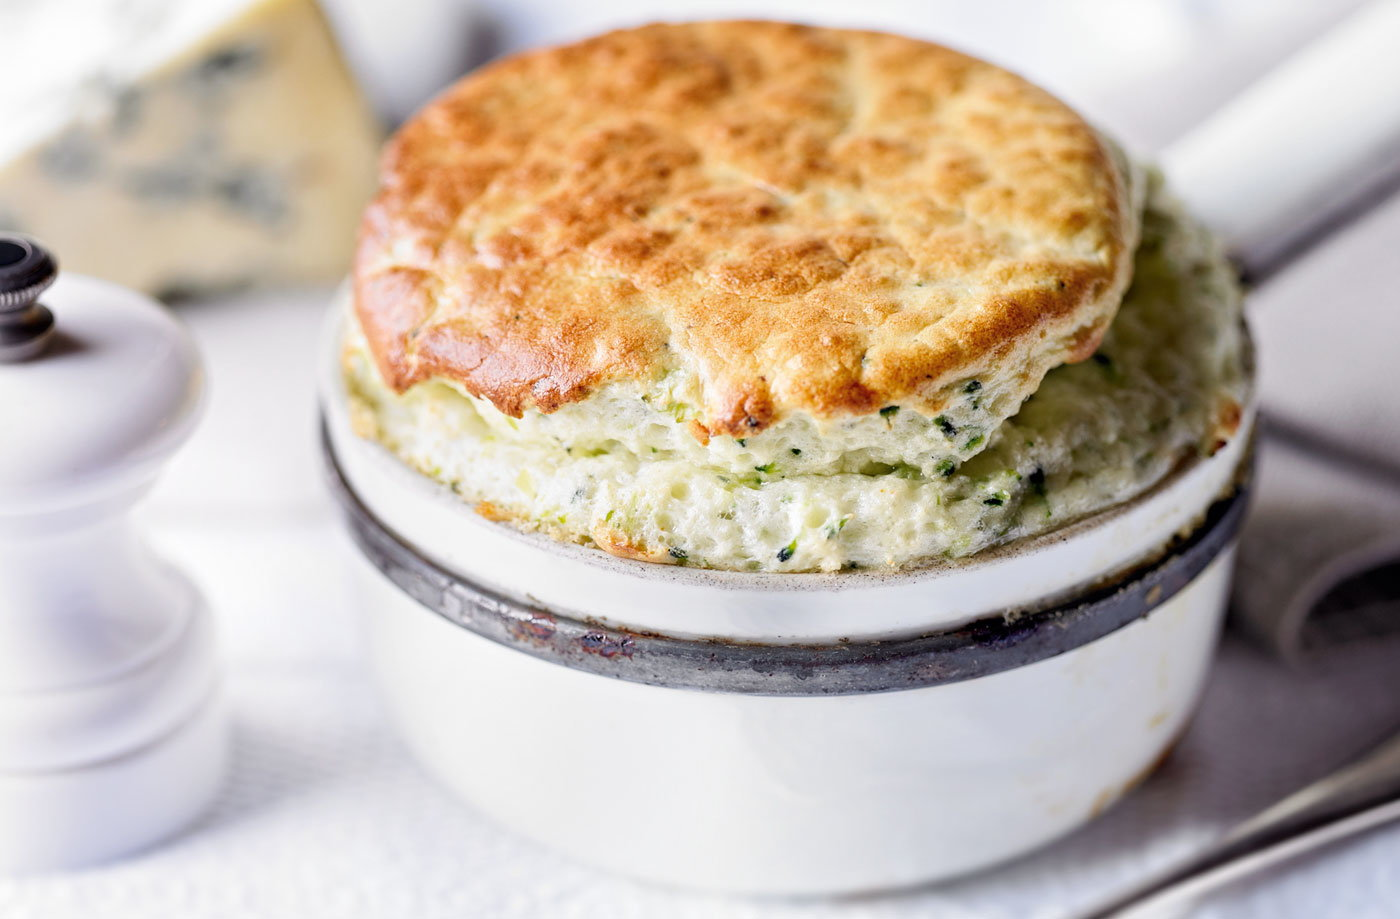 Broccoli and stilton soufflé recipe